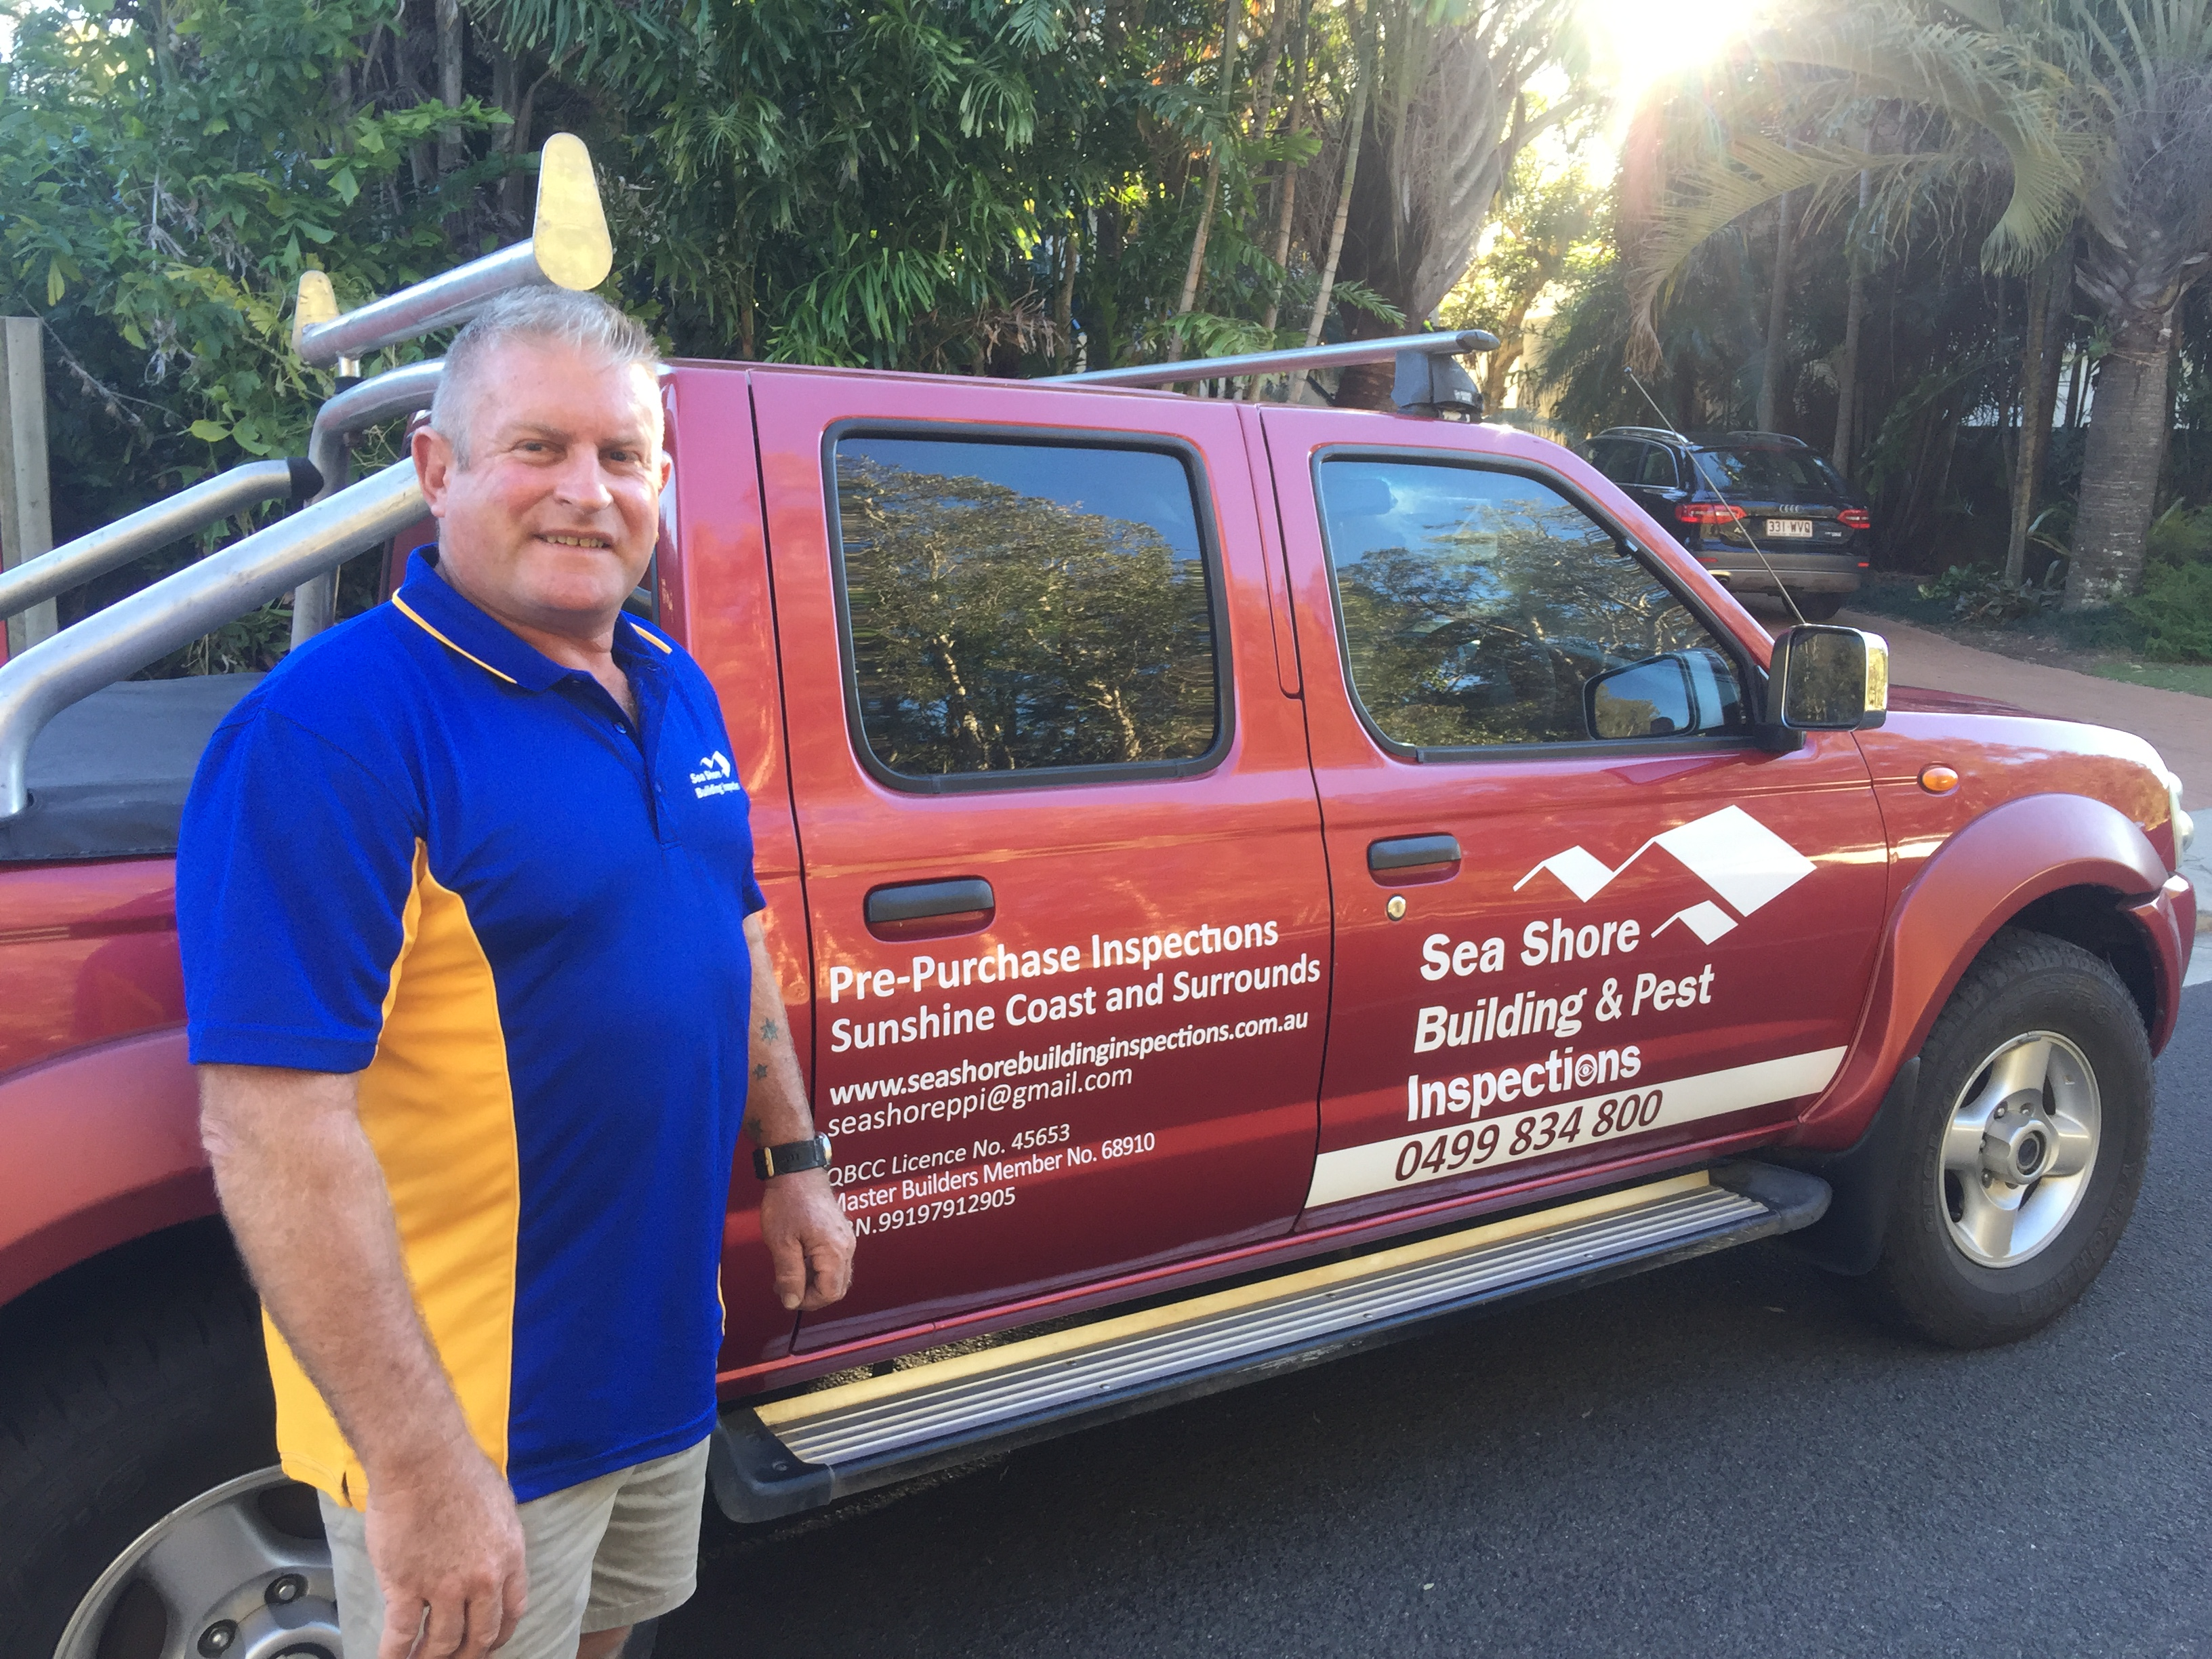 Building and Pest Inspections on the Sunshine Coast